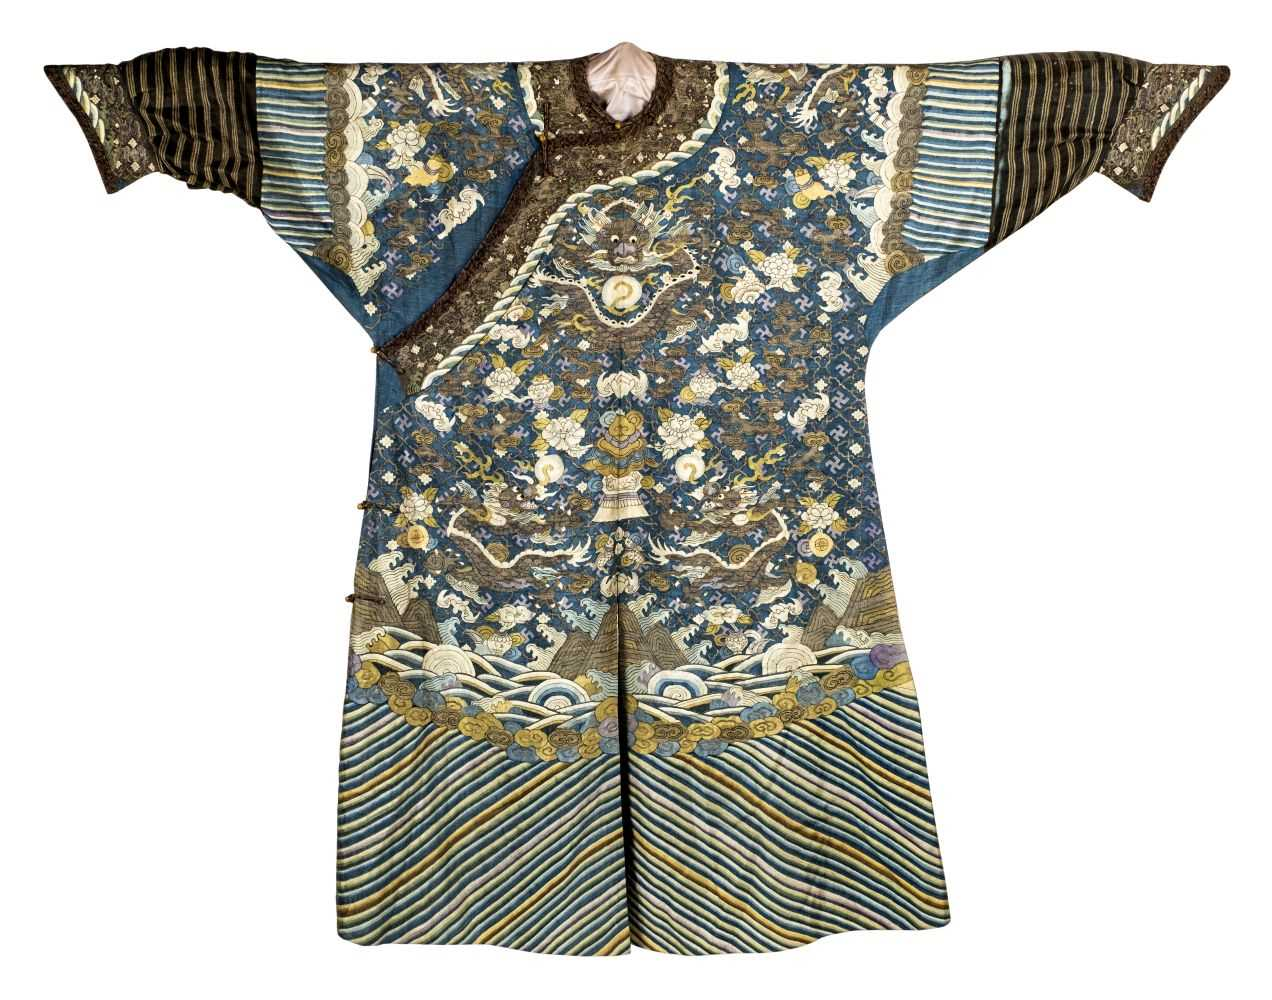 142 - Chinese Dragon Robe.  A kesi silk nine-dragon robe, late Qing Dynasty